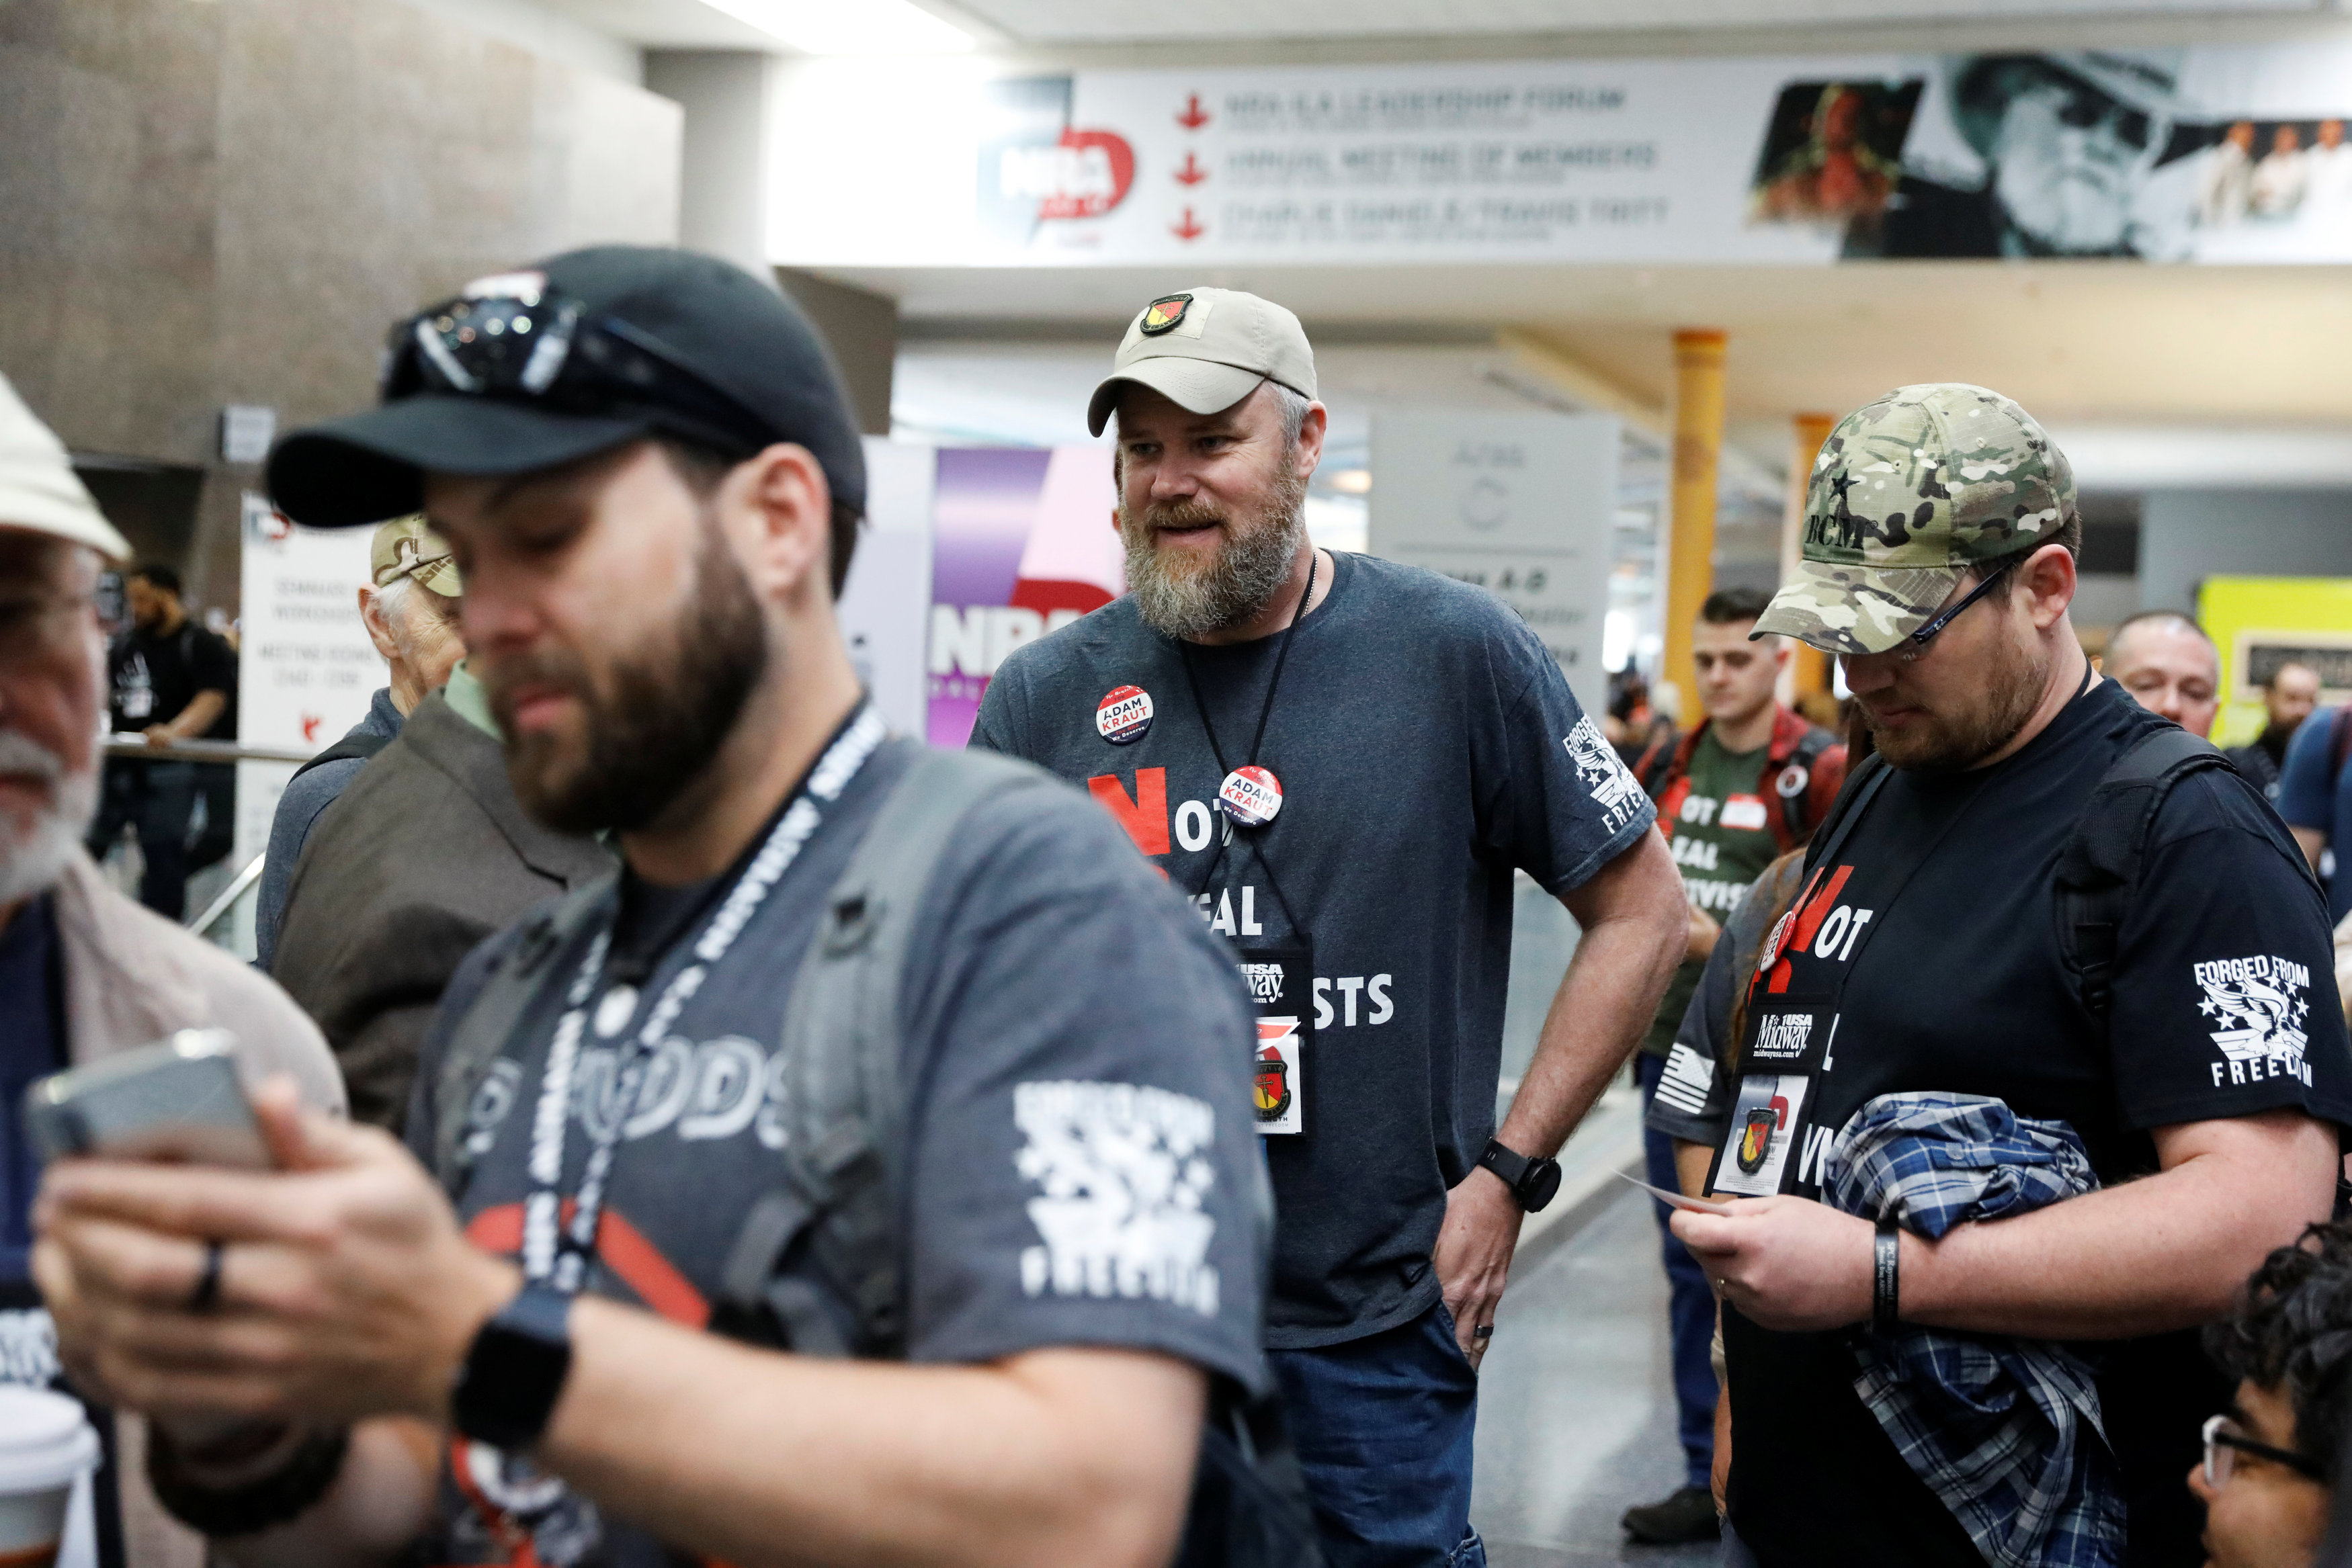 Gun rights proponent Tim Harmsen speaks to NRA members about Adam Kraut's candidacy for a seat on the board of the National Rifle Association (NRA) at the organisation's convention in Dallas